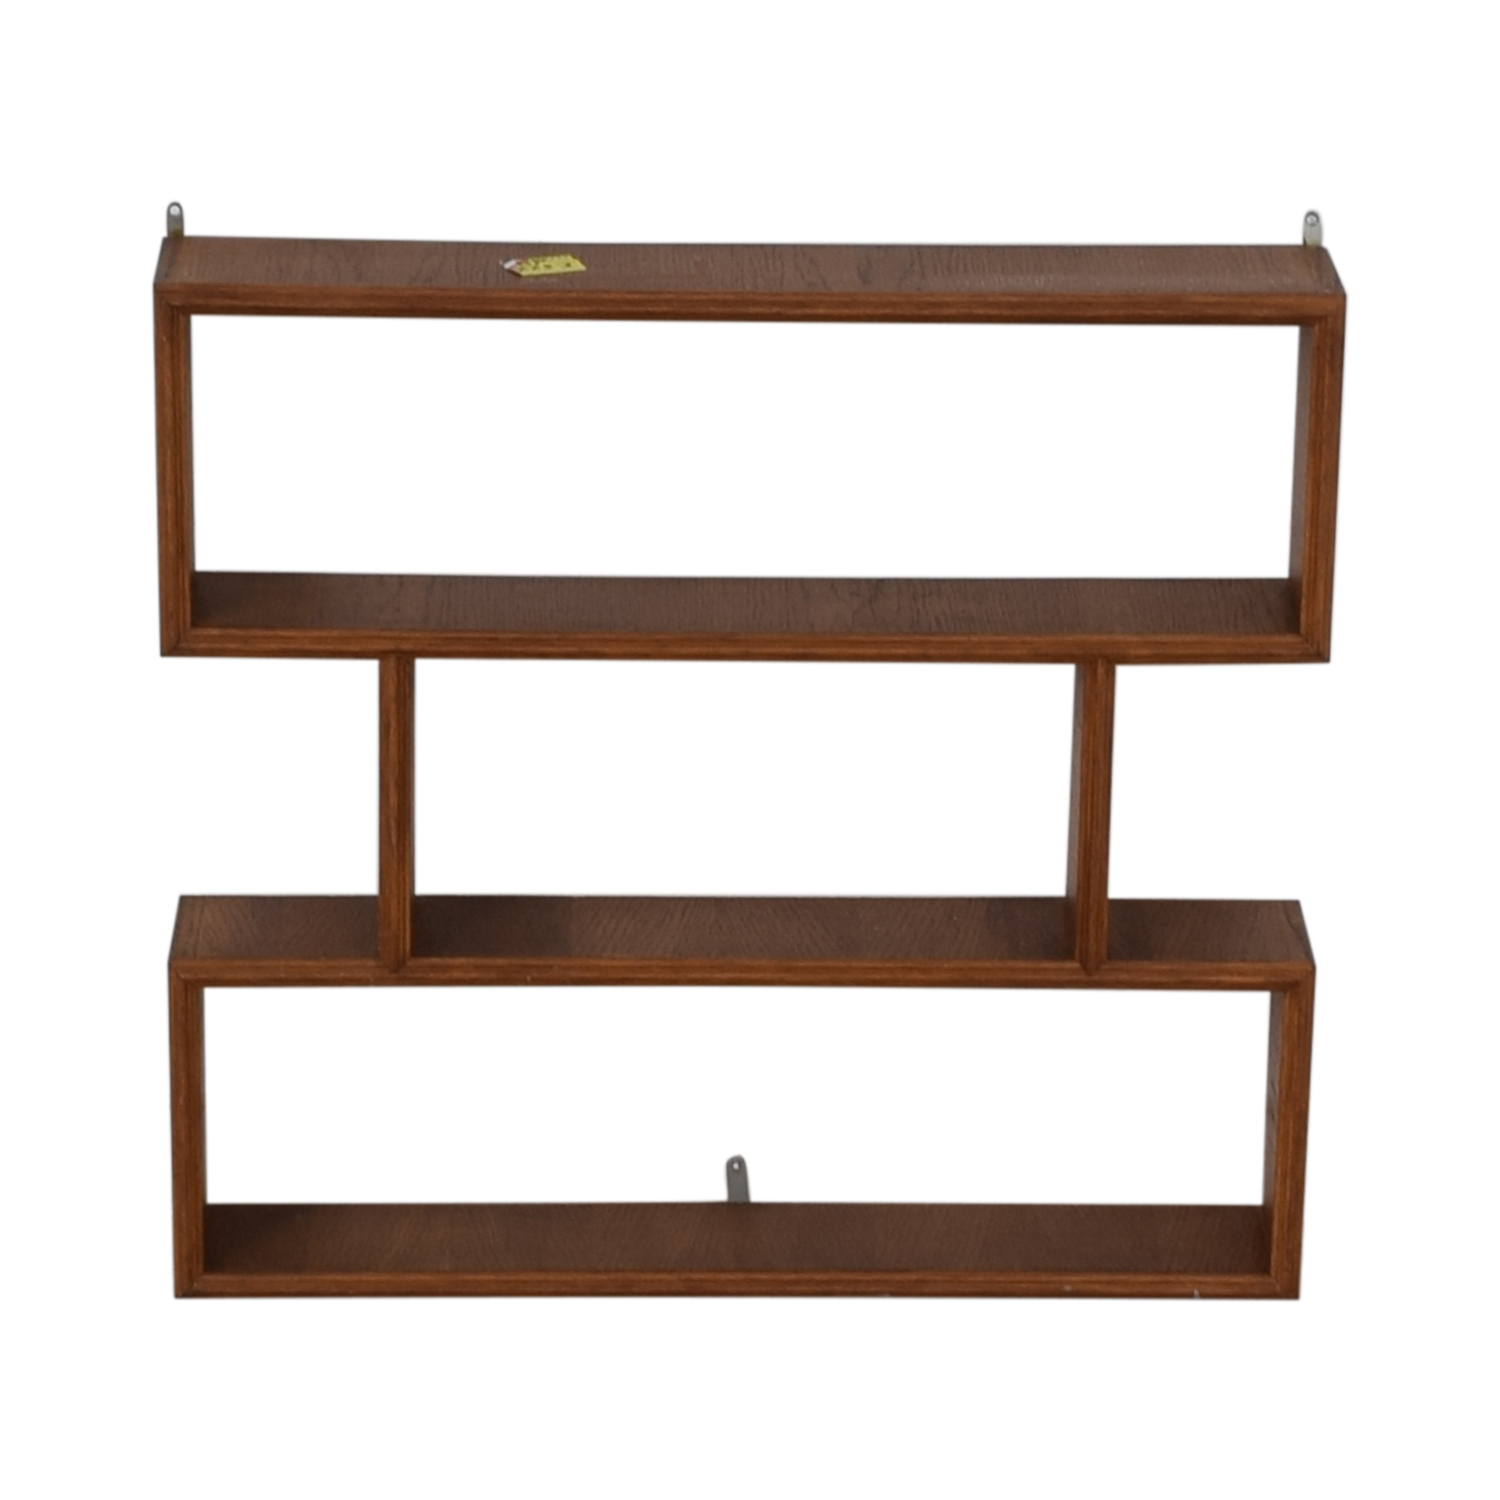 Custom Made French Made Mid Century Wall Shelf Storage